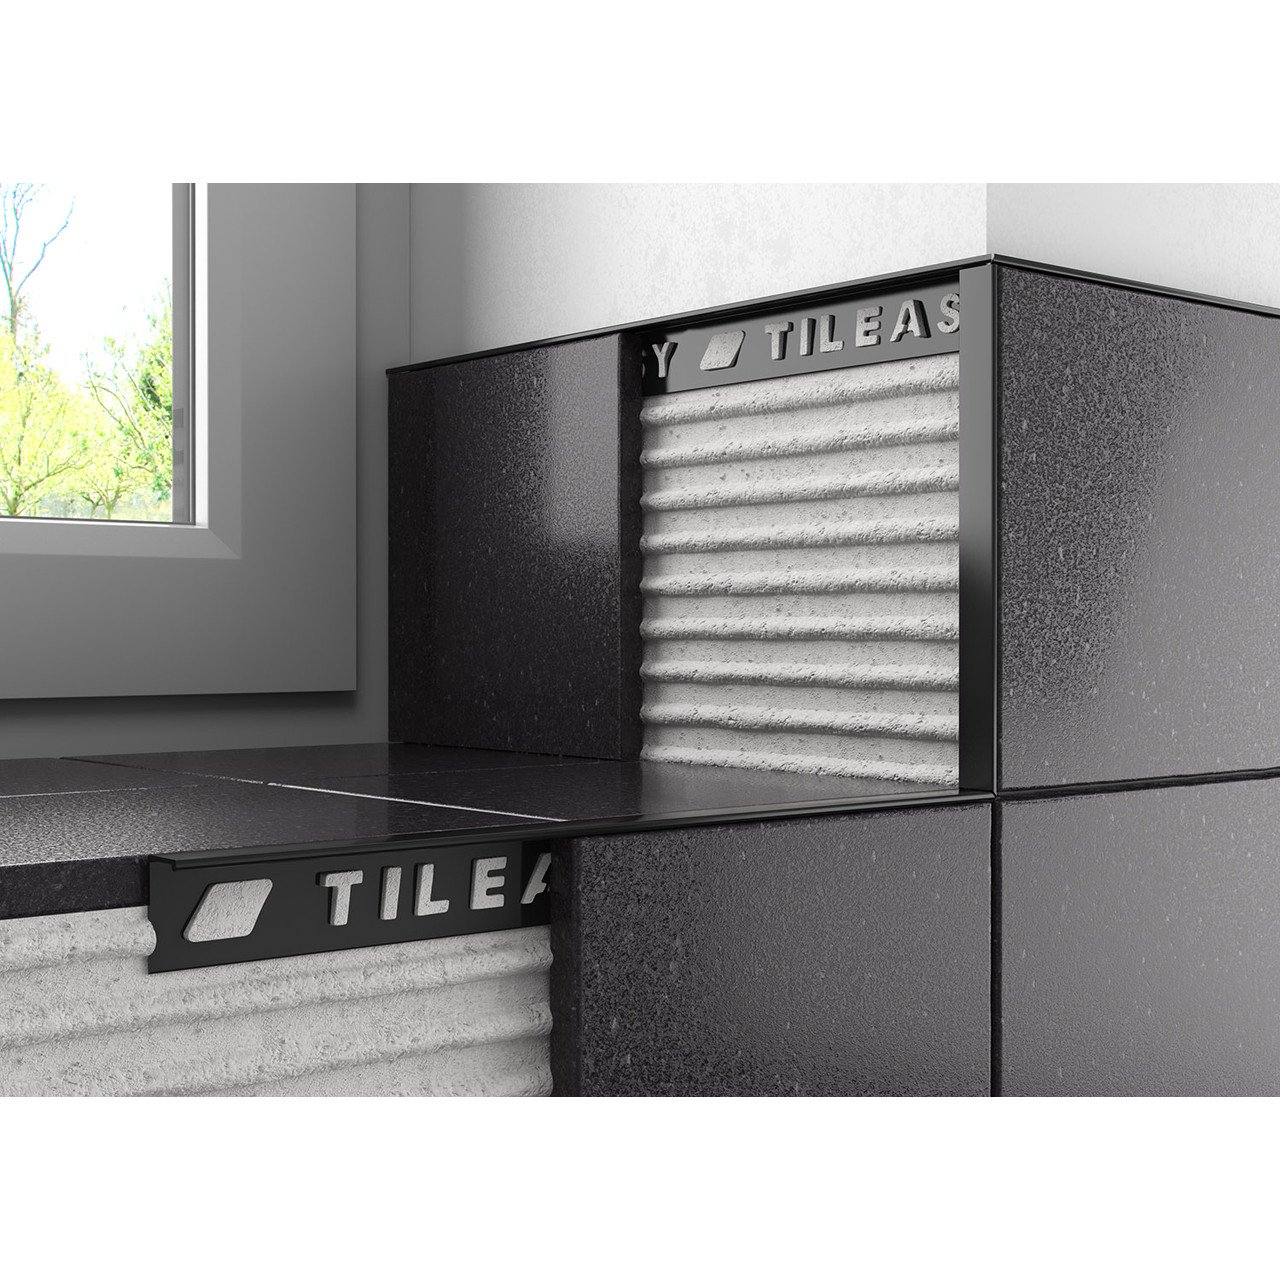 Tileasy 12mm Black Square Edge Metal Tile Trim Bat12 intended for size 1280 X 1280